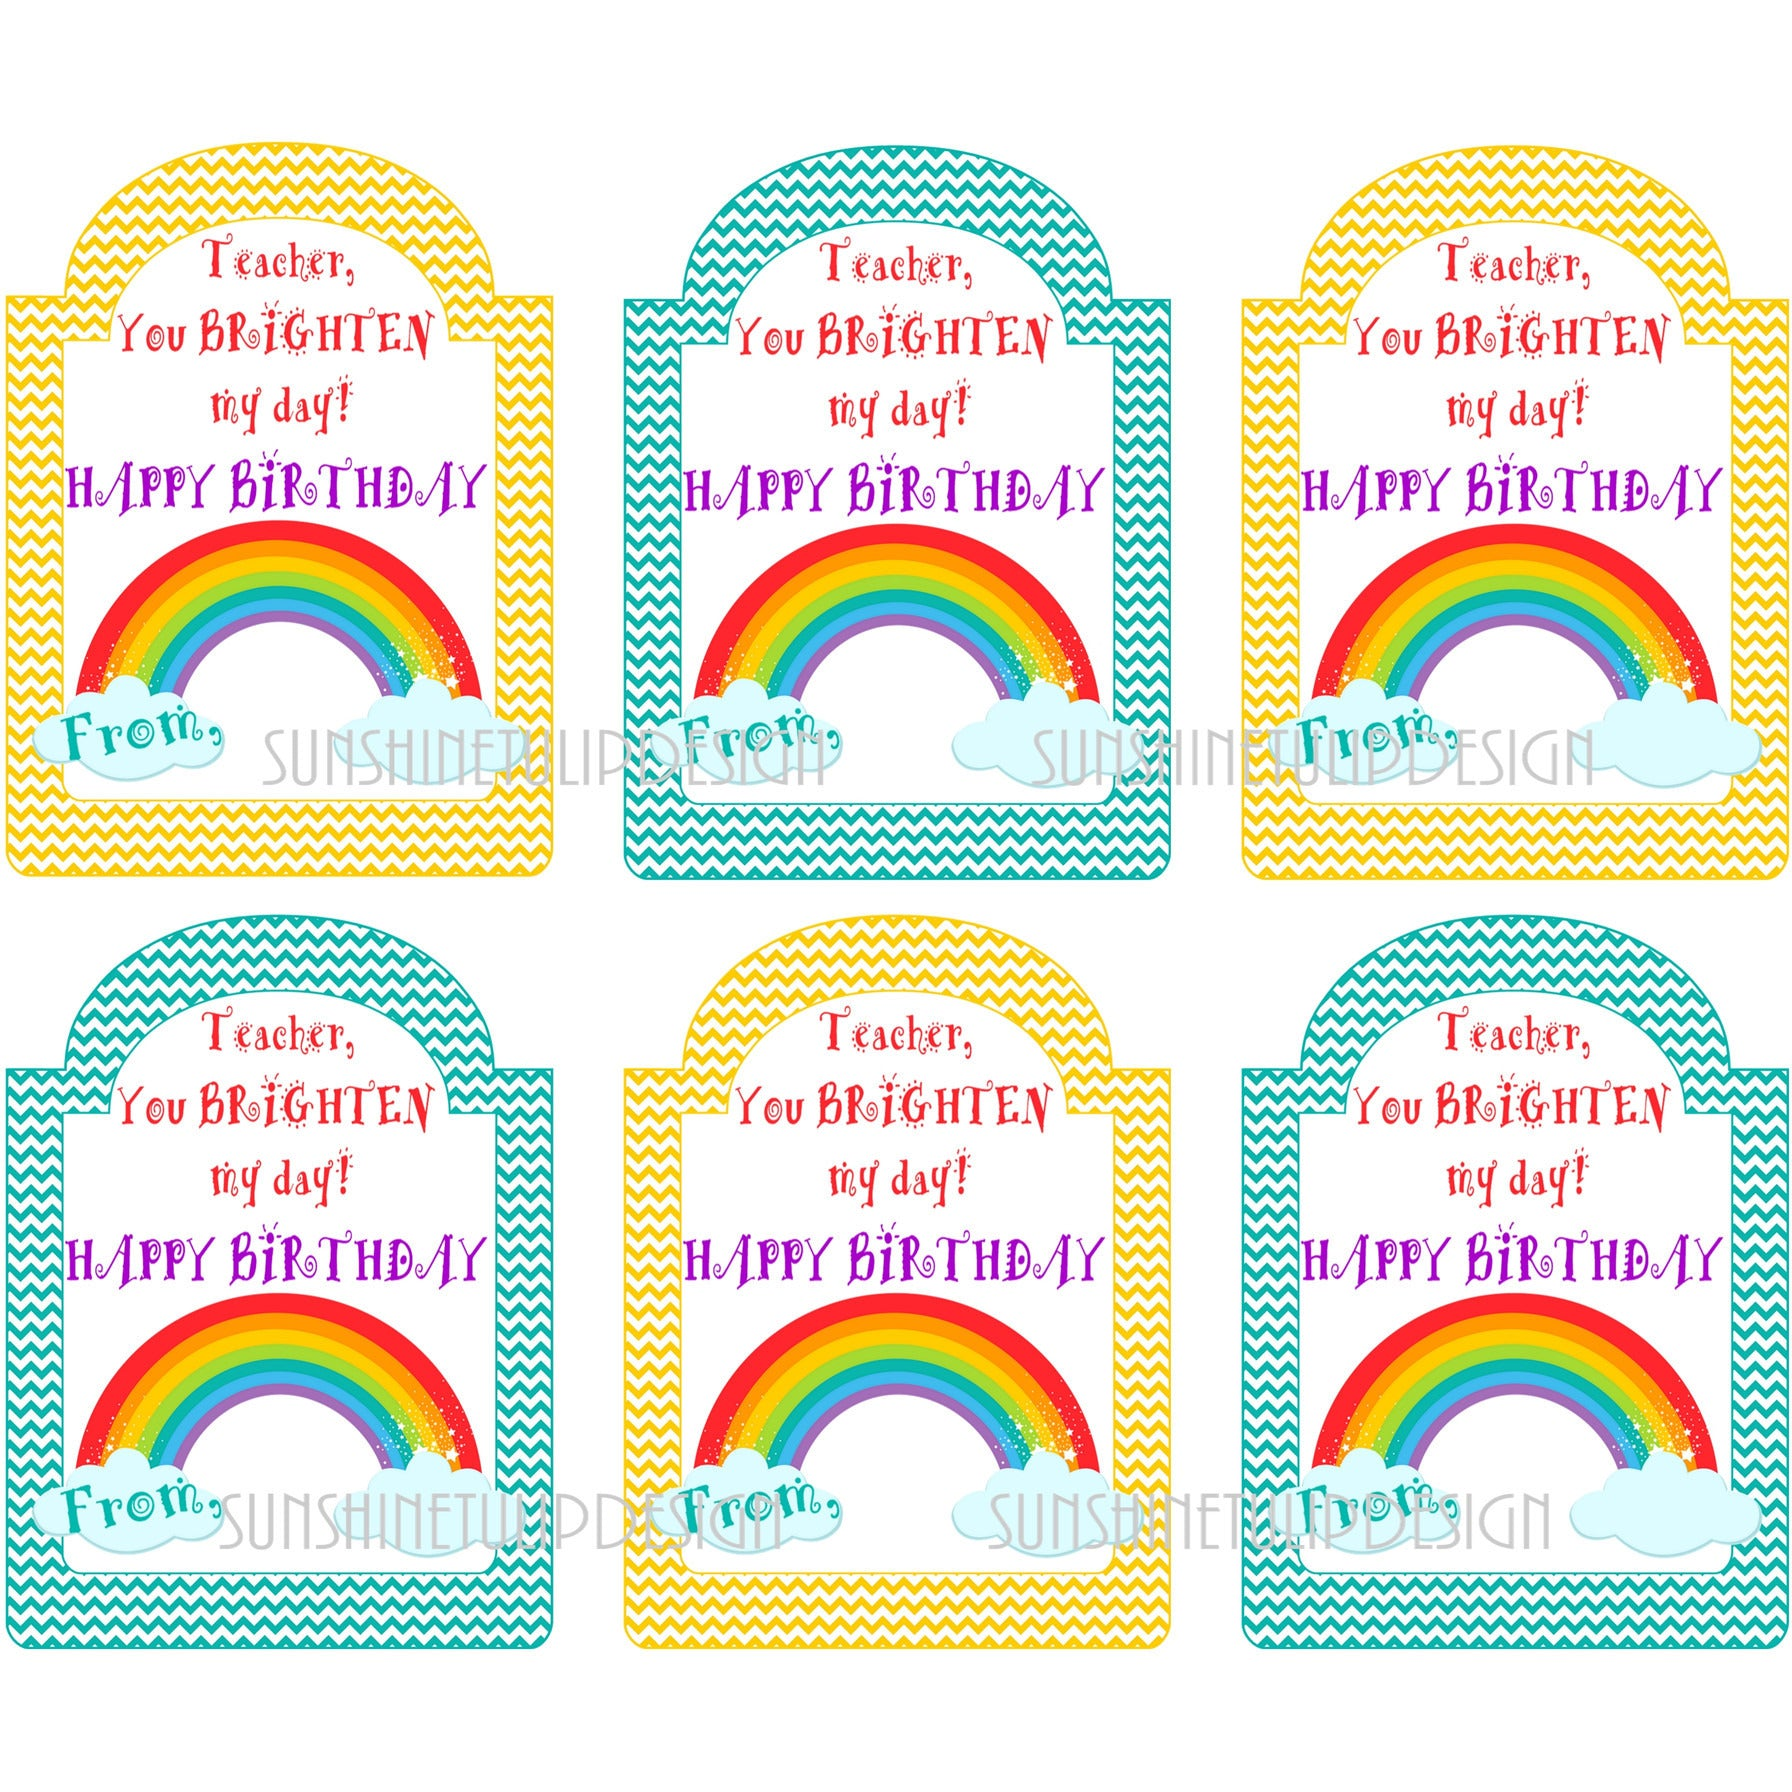 graphic relating to Happy Birthday Tag Printable referred to as Printable Trainer Birthday Reward Tags, Joyful Birthday Printable Trainer Tags as a result of SUNSHINETULIPDESIGN